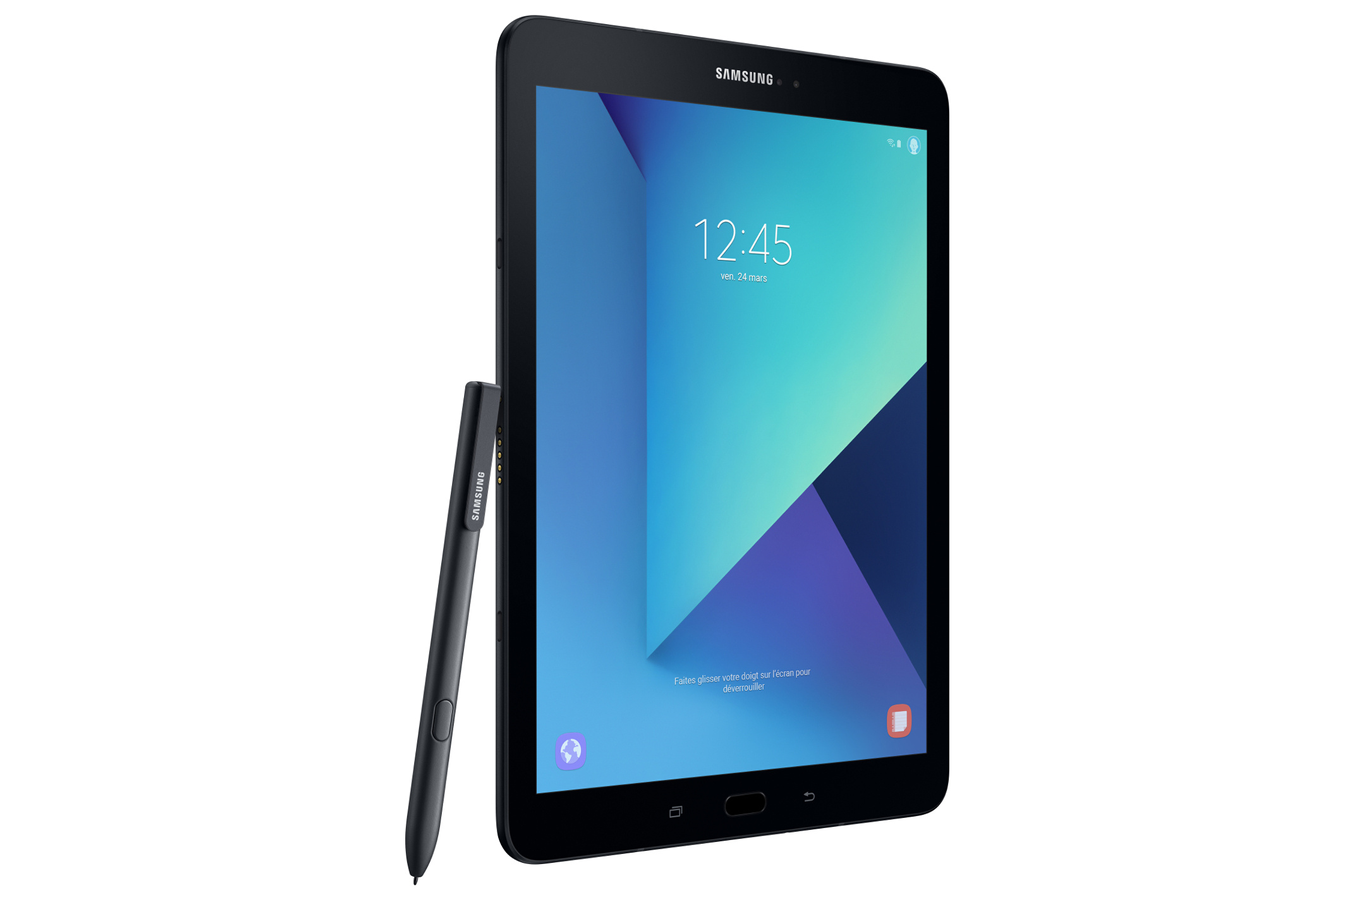 tablette tactile samsung galaxy tab s3 noire 32 go galaxy tab s3 noire 32 go 4302249 darty. Black Bedroom Furniture Sets. Home Design Ideas